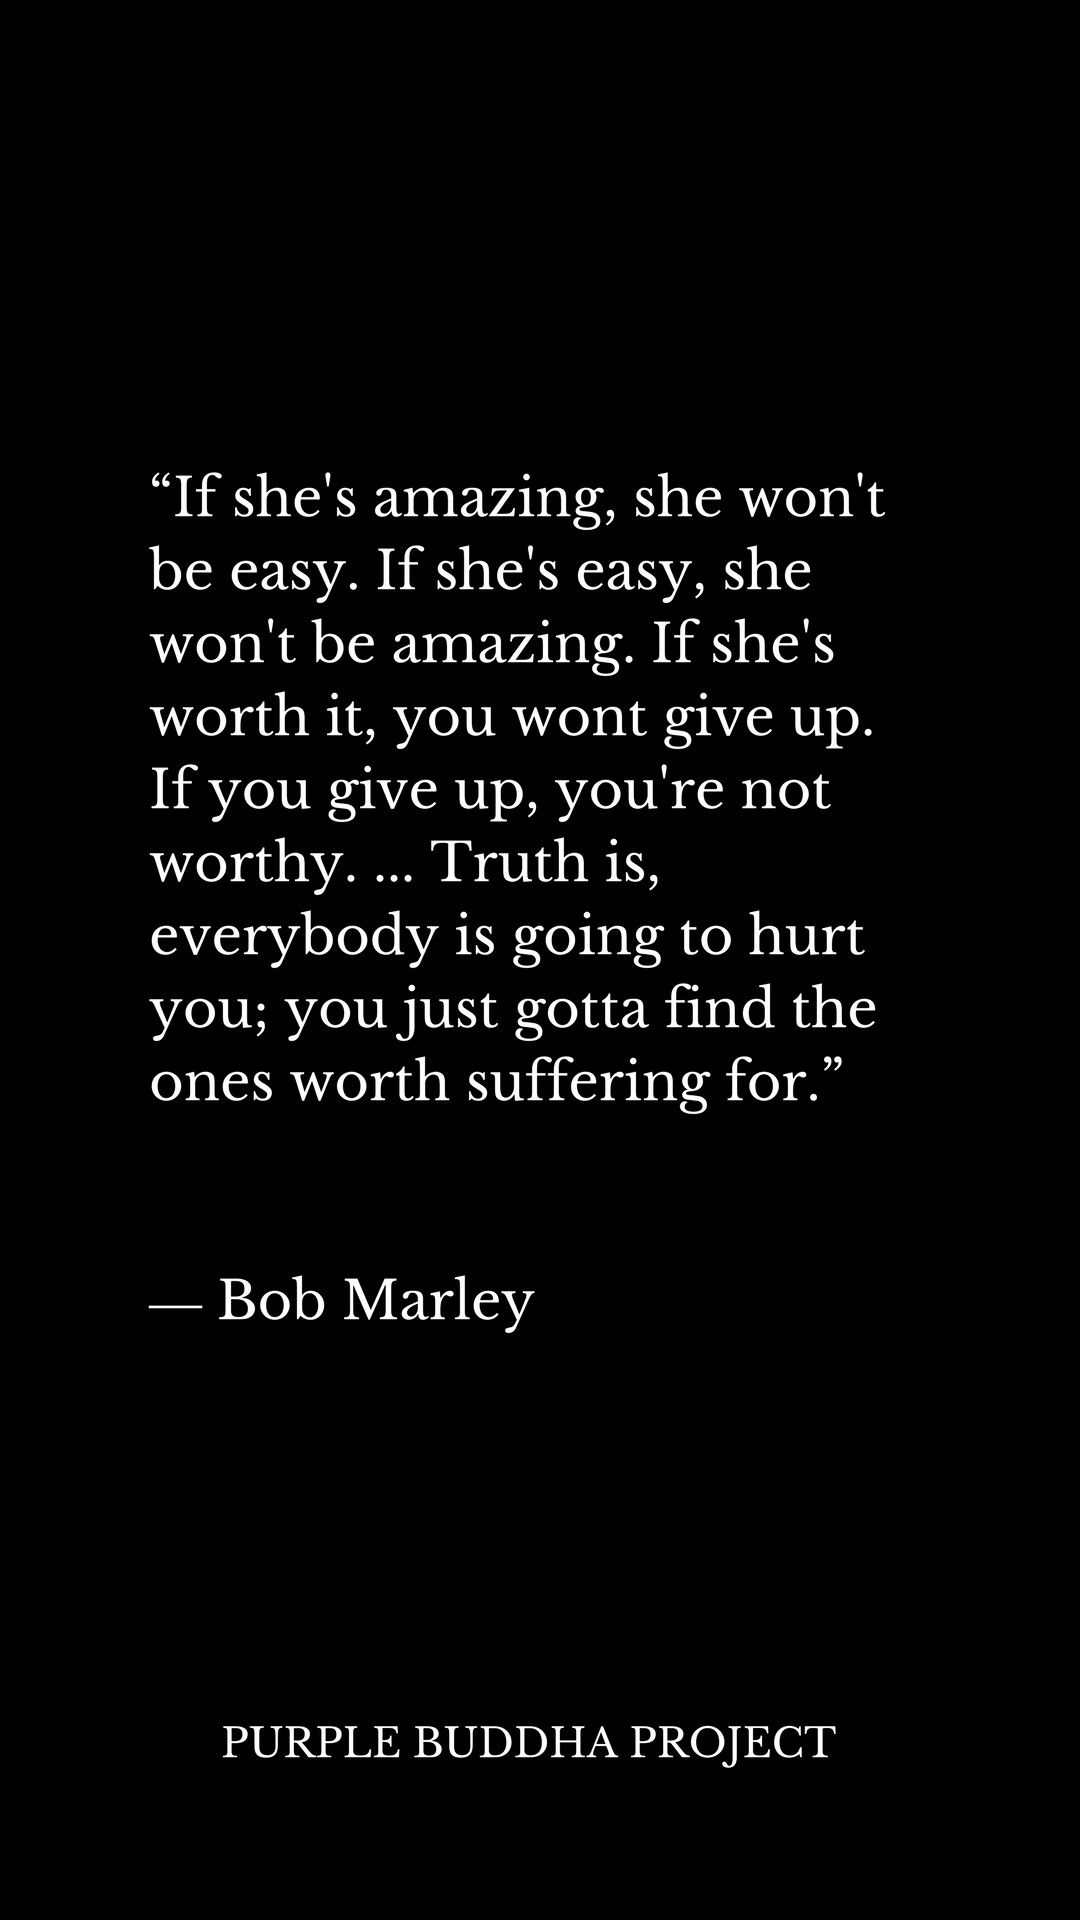 the ones worth suffering for